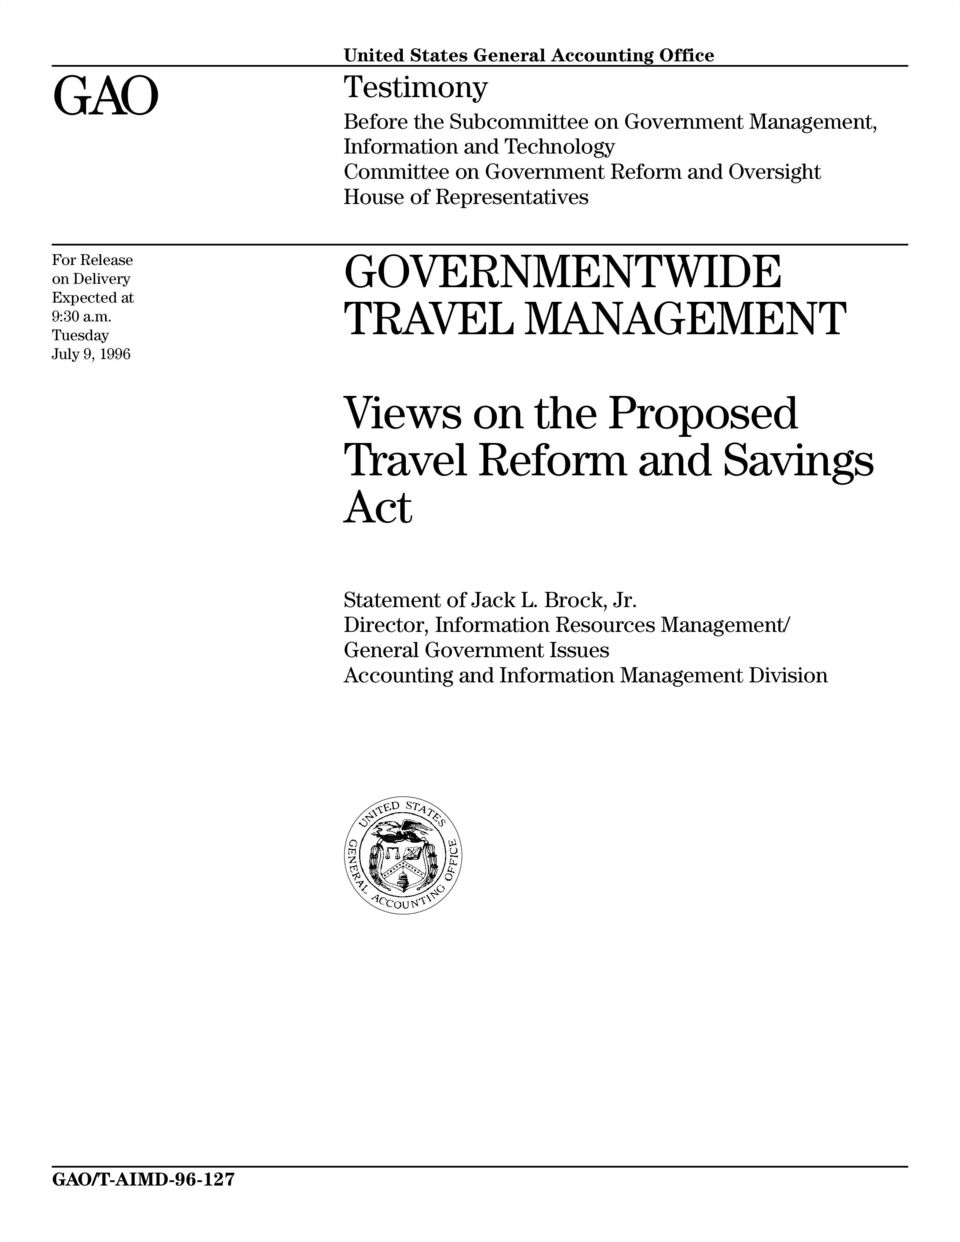 Information and Technology Committee on Government Reform and Oversight House of Representatives GOVERNMENTWIDE TRAVEL MANAGEMENT